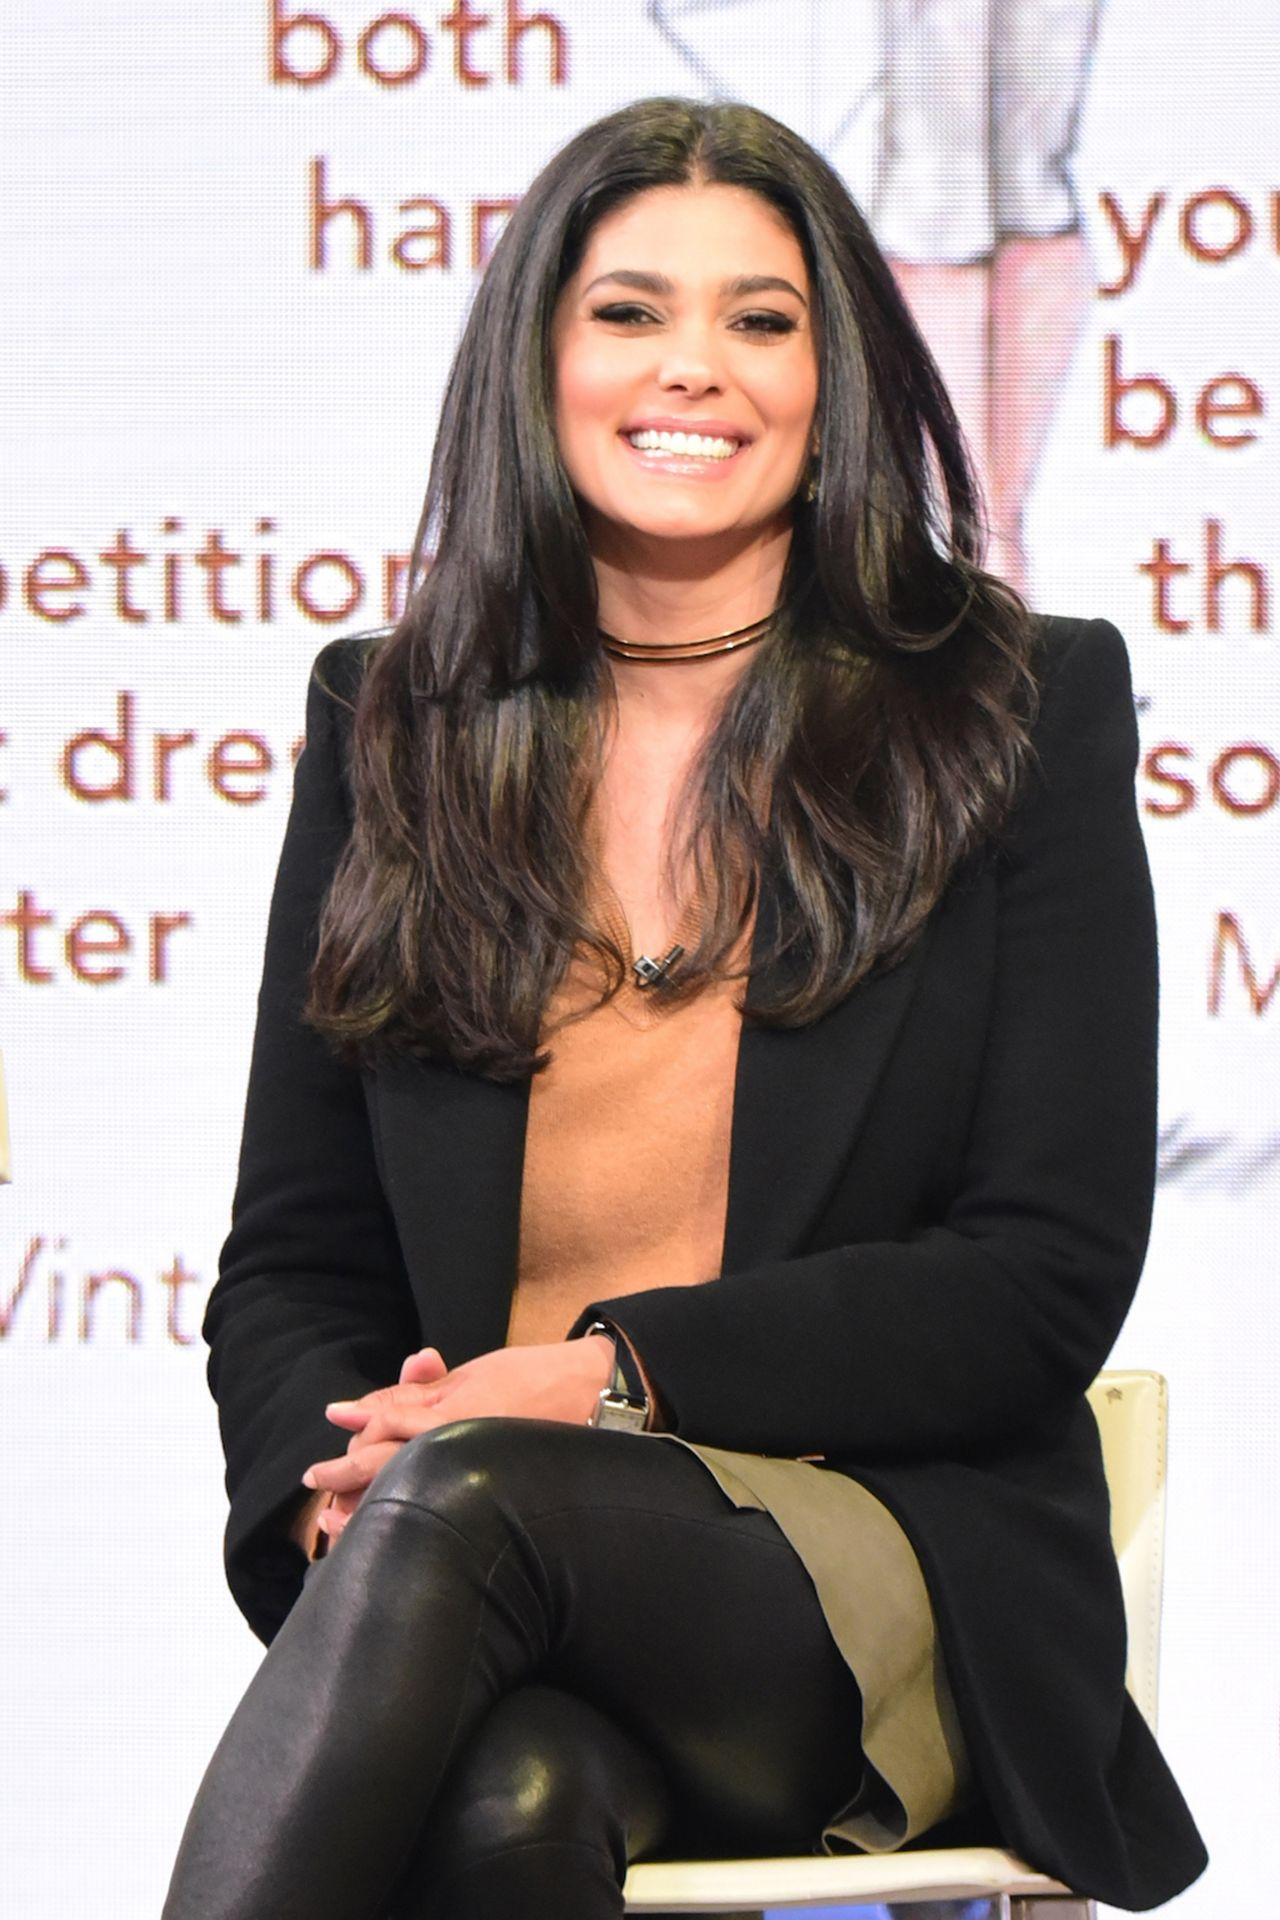 Rachel Roy Talks About Her New Book Design Your Life On Good